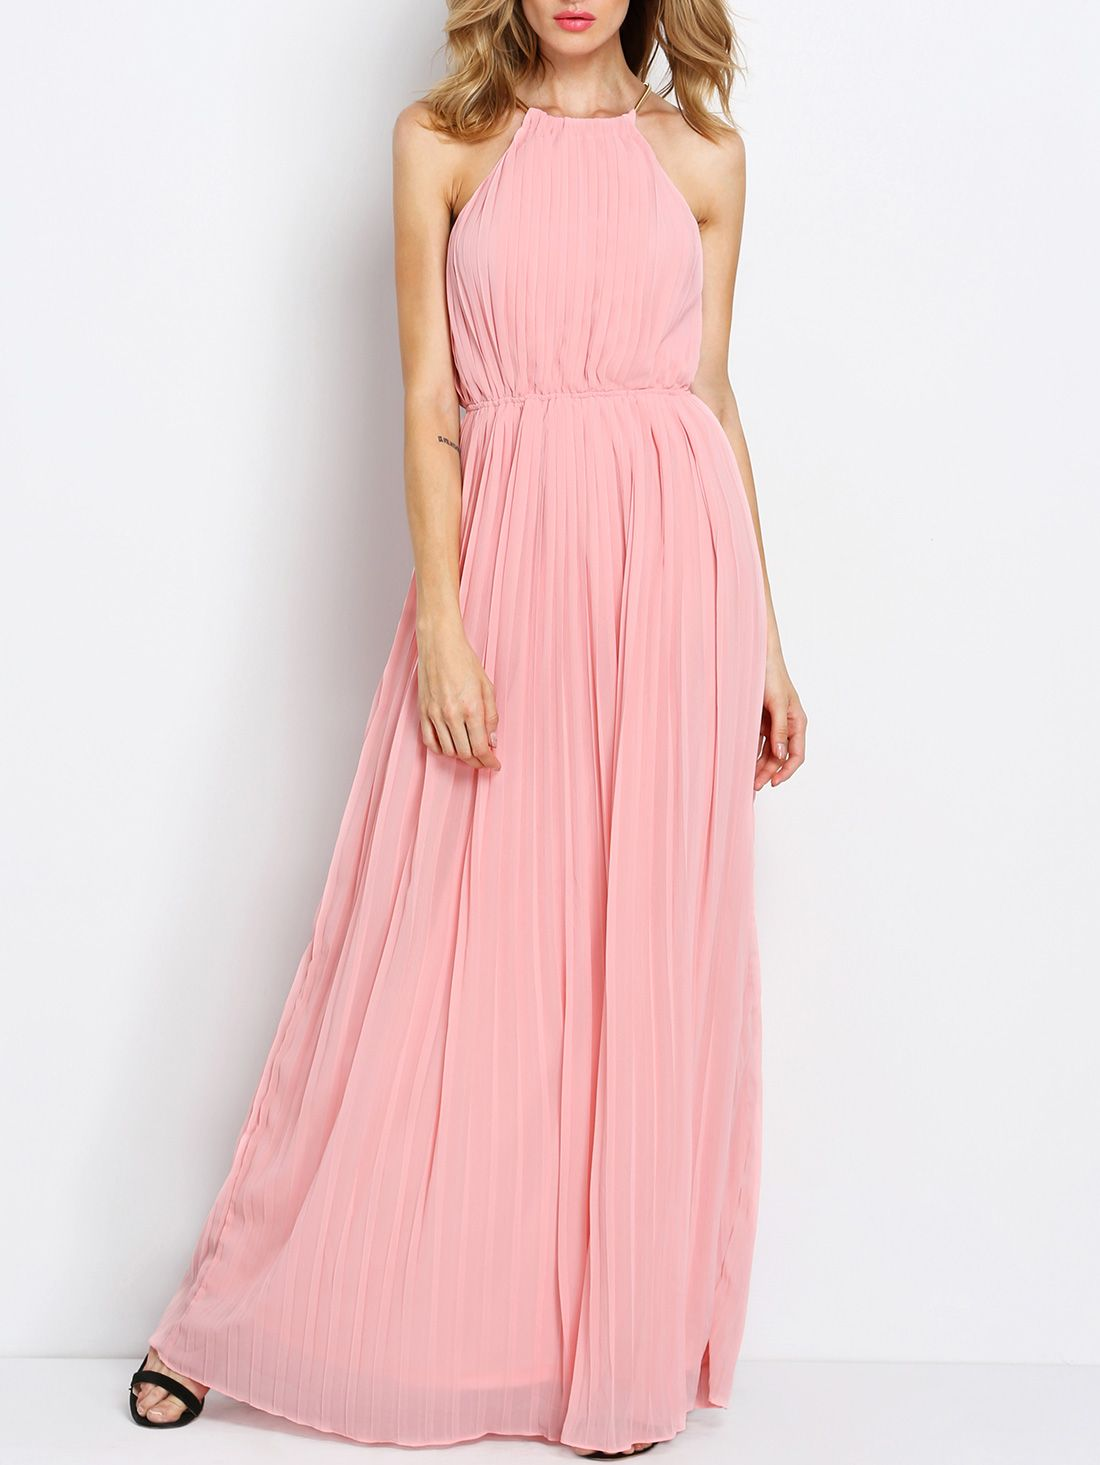 Pink Sleeveless Halter Pleated Maxi Dress | Pinterest | Verano ...